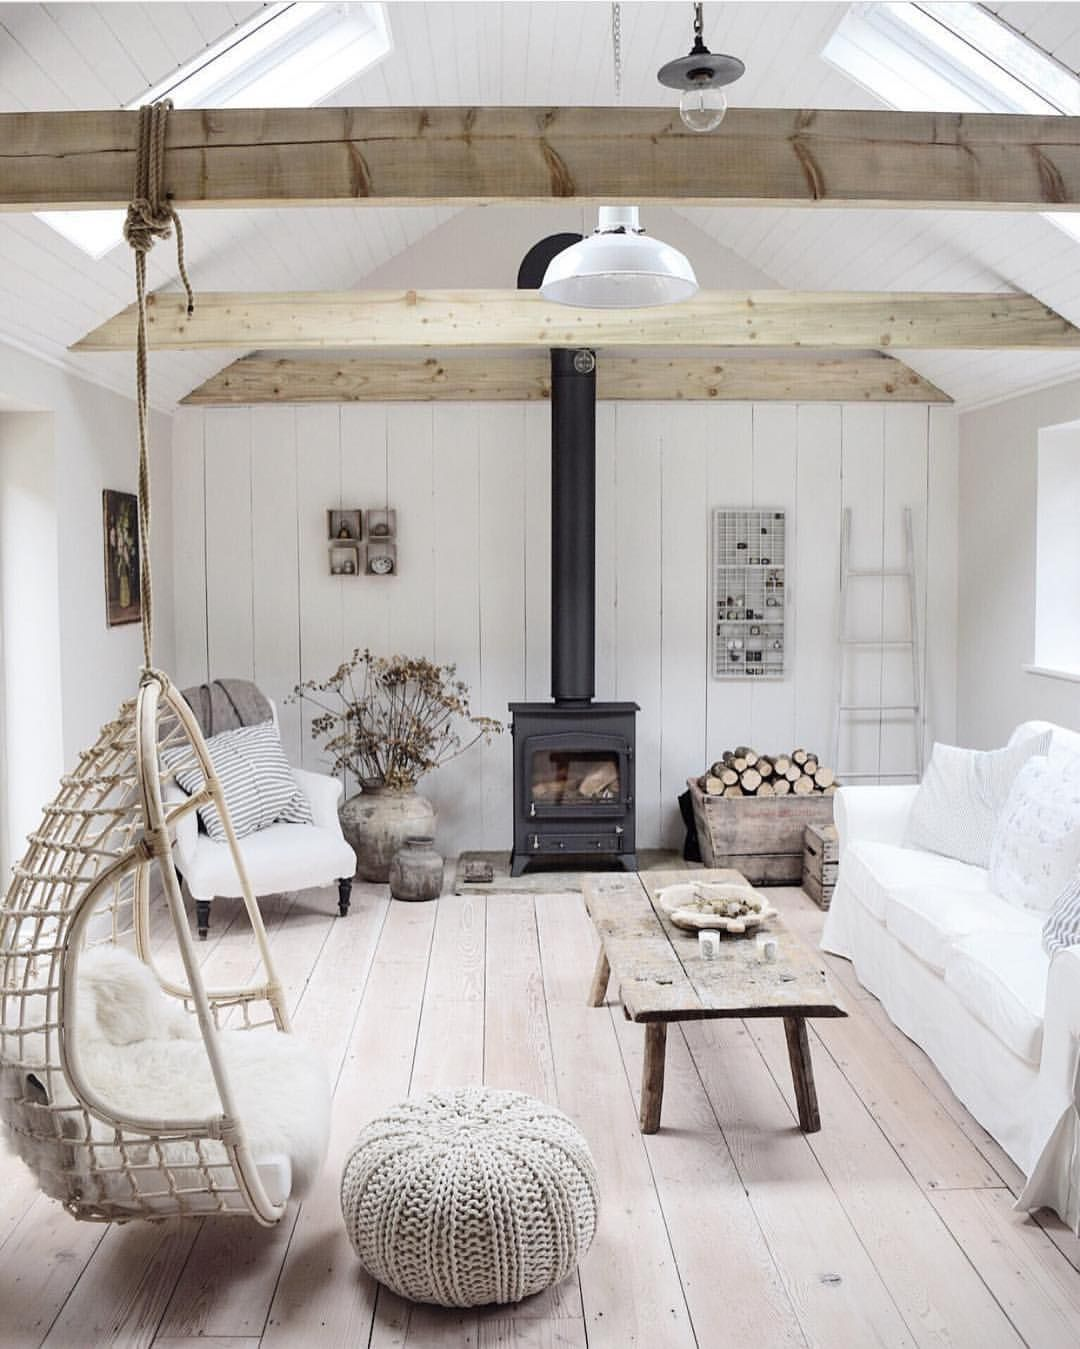 Pin by Eva Lemmert on Drin | Pinterest | Happy friday, Interiors and ...